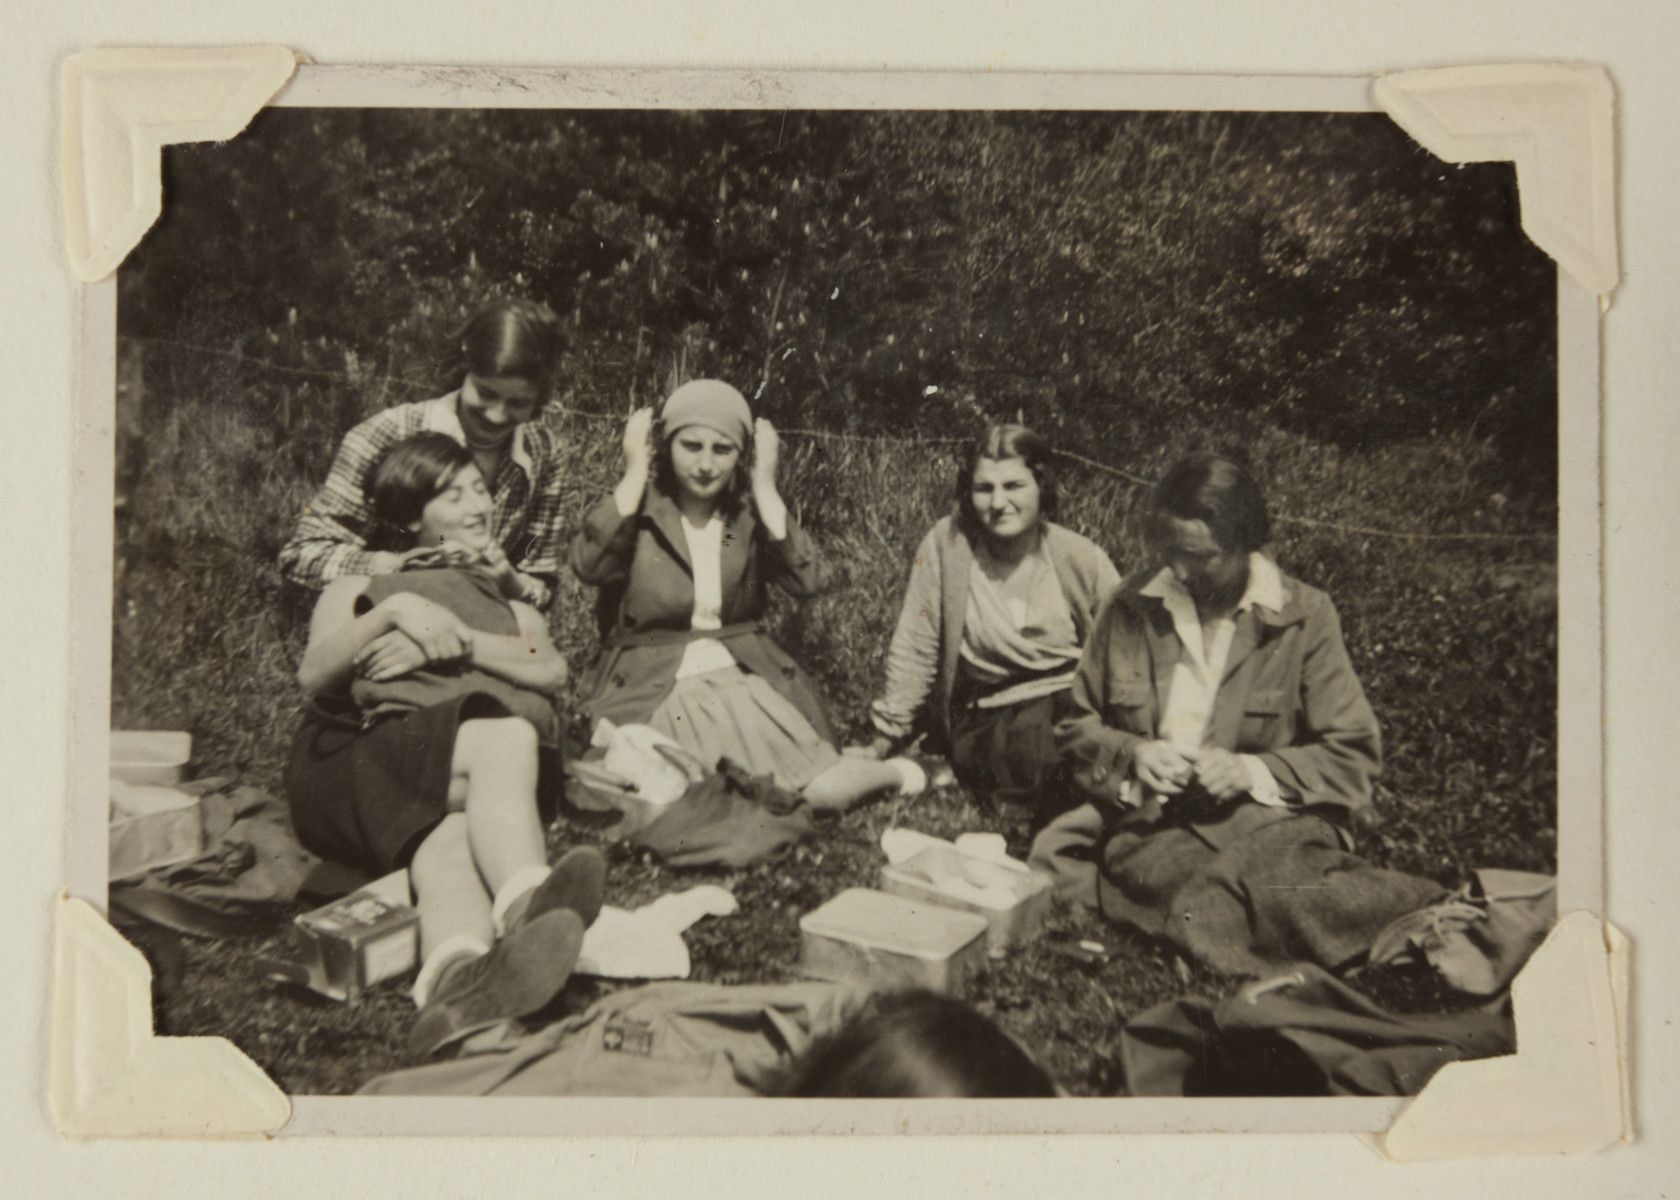 Maria Bloch-Bauer (in plaid sweater) poses with friends during a picnic.